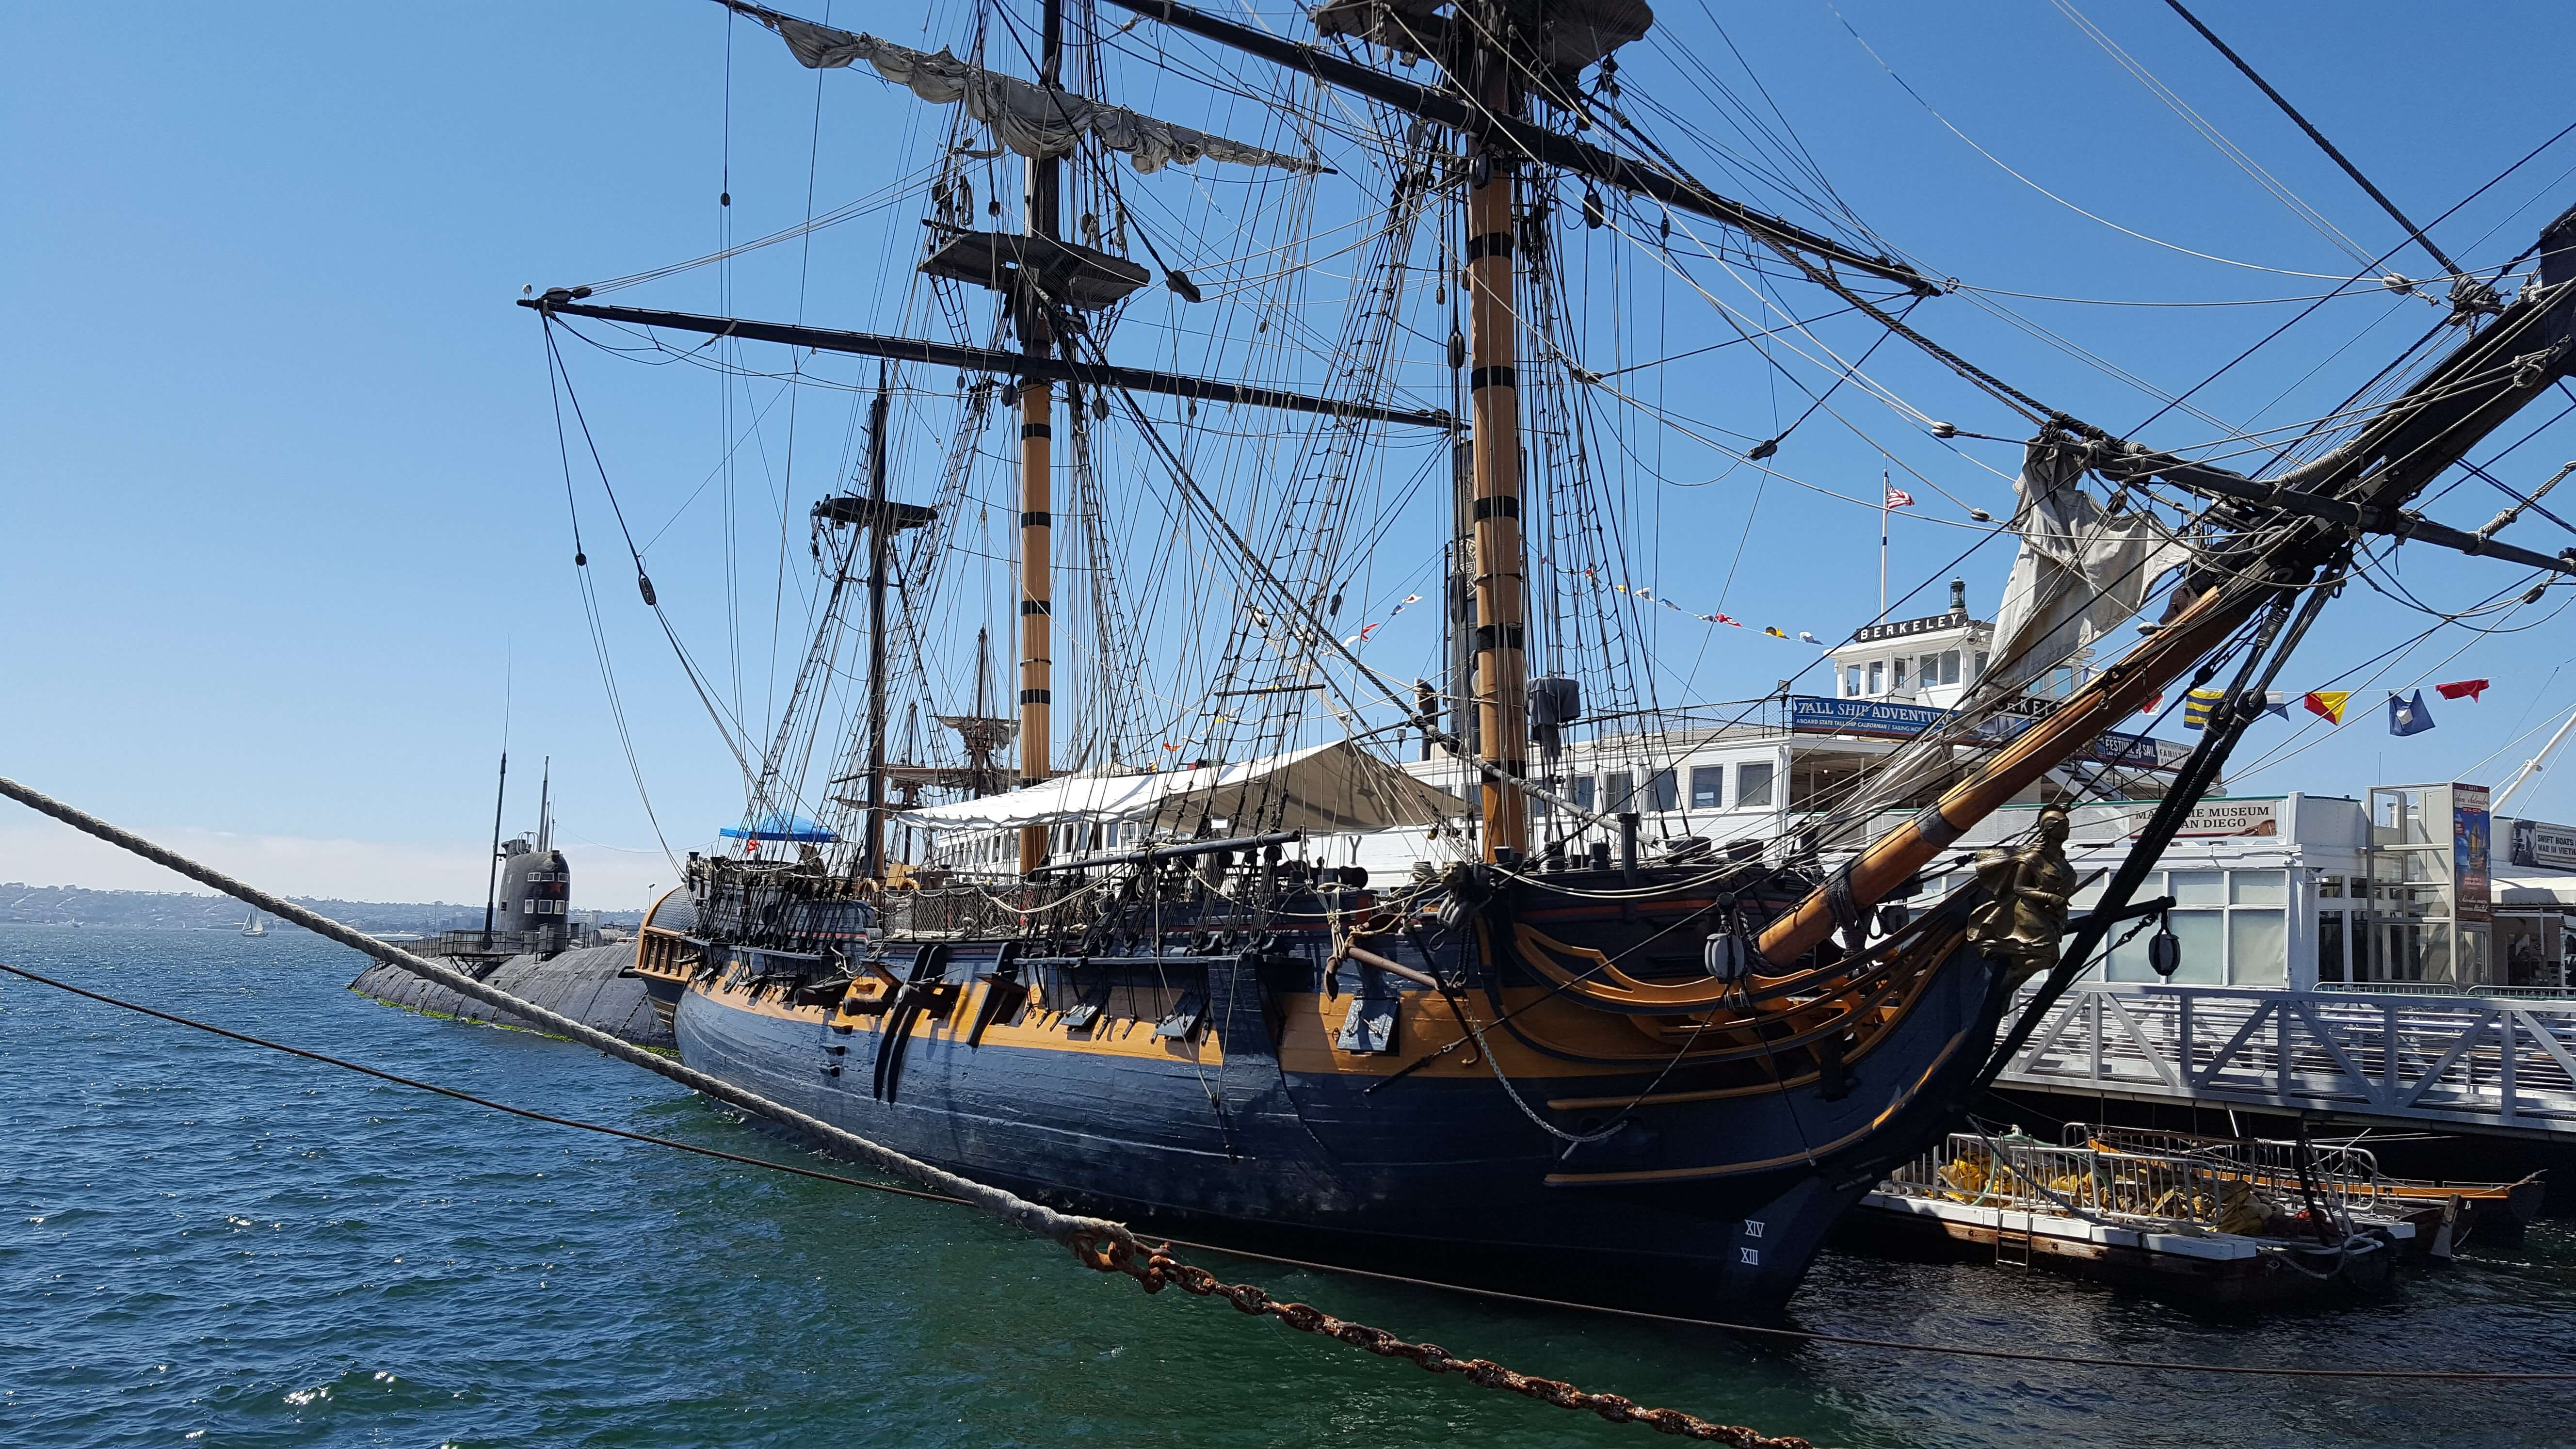 The stately HMS Surprise